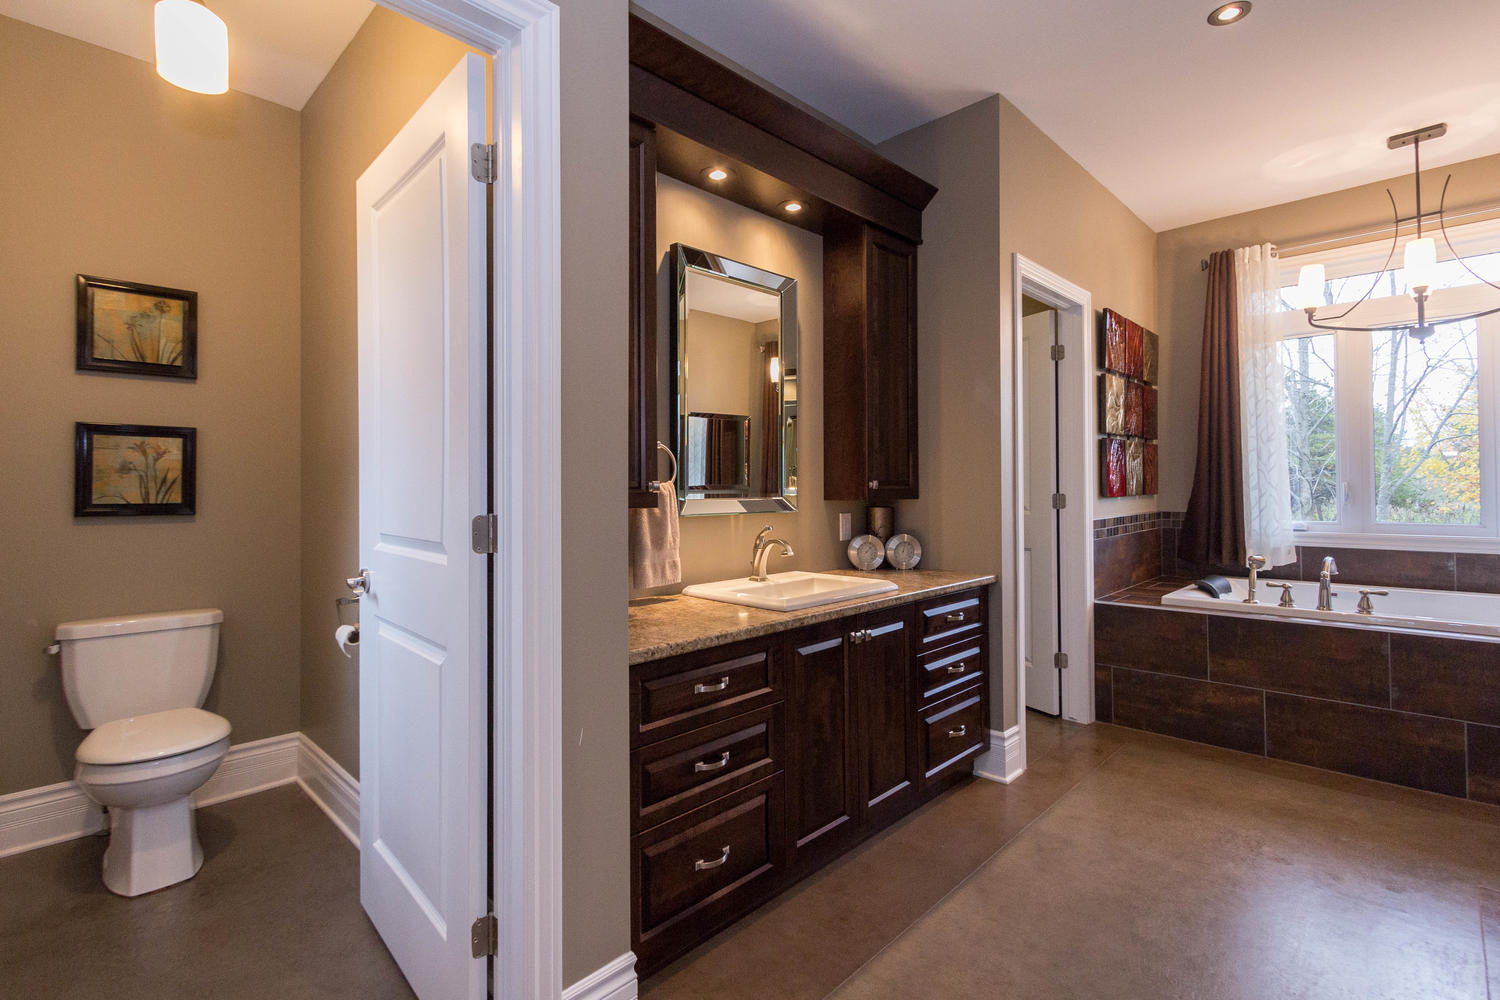 Beautiful vanity, separate toilet area, branches off to two walk in closets, large Jacuzzi tub, massive walk in shower with his and her showers